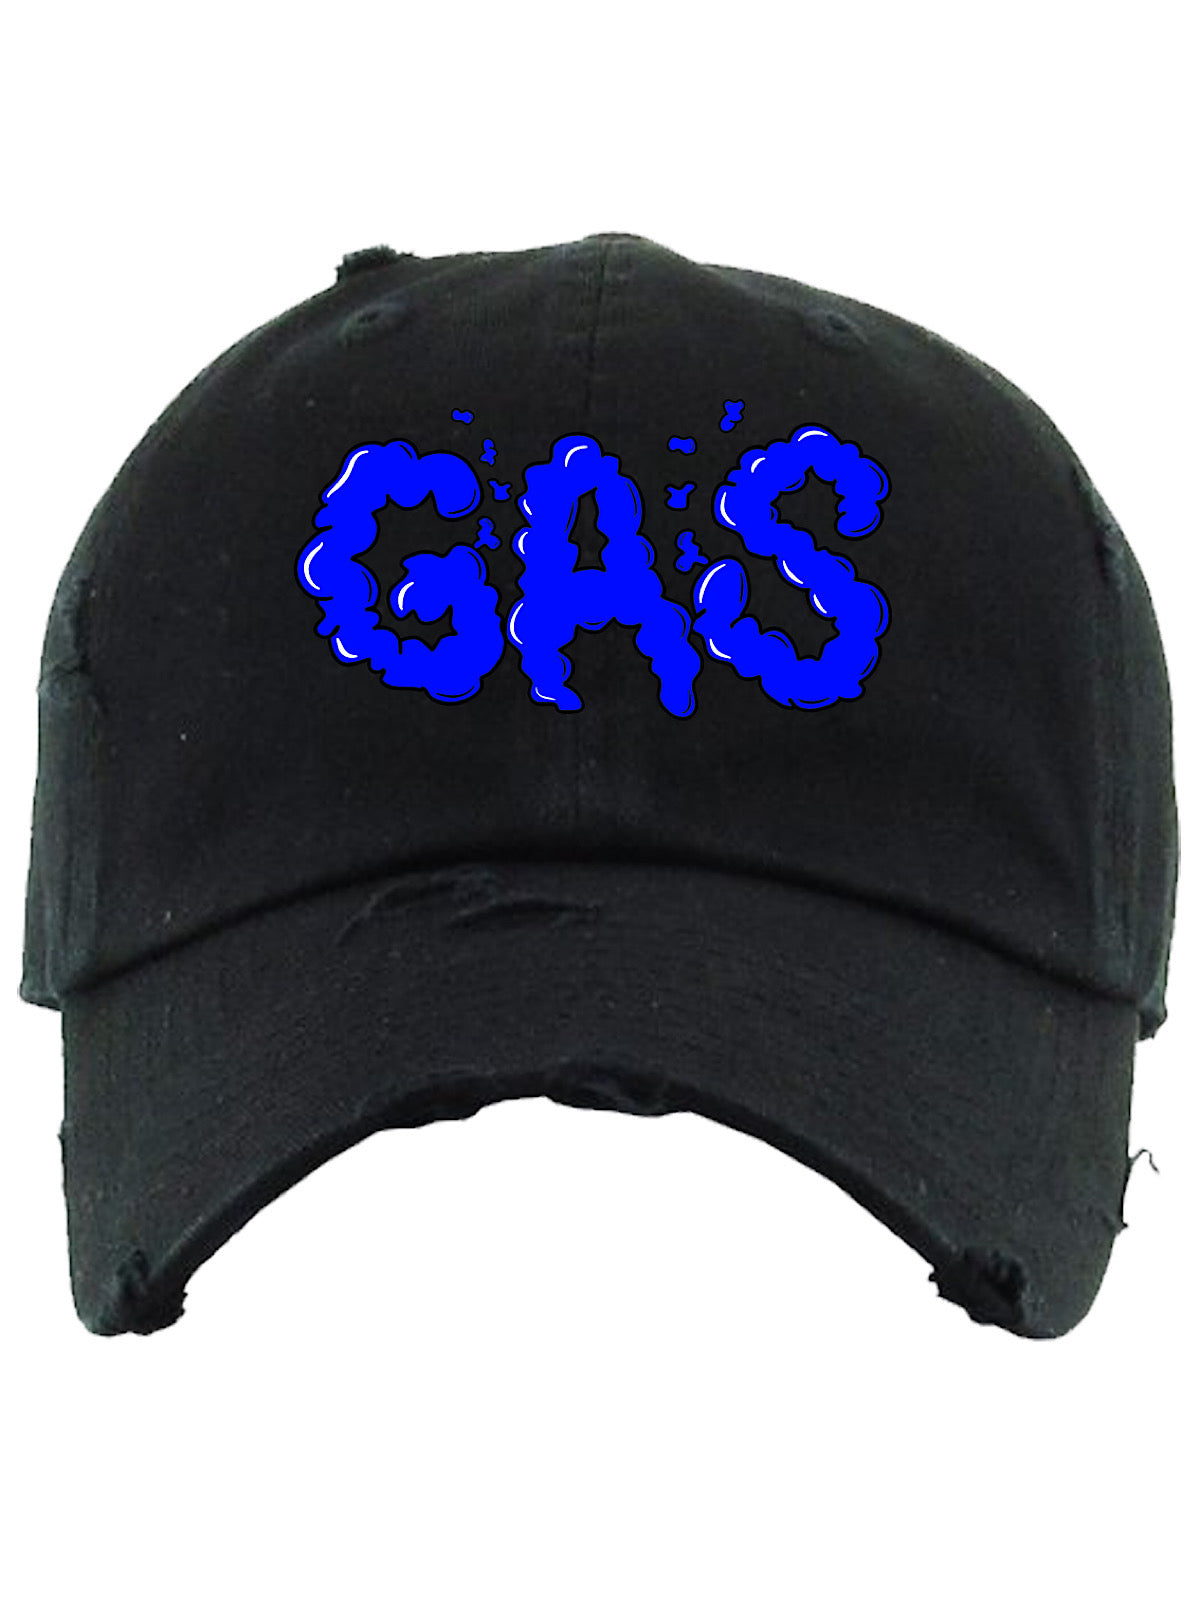 PG Apparel Hat - GAS - Black with Blue